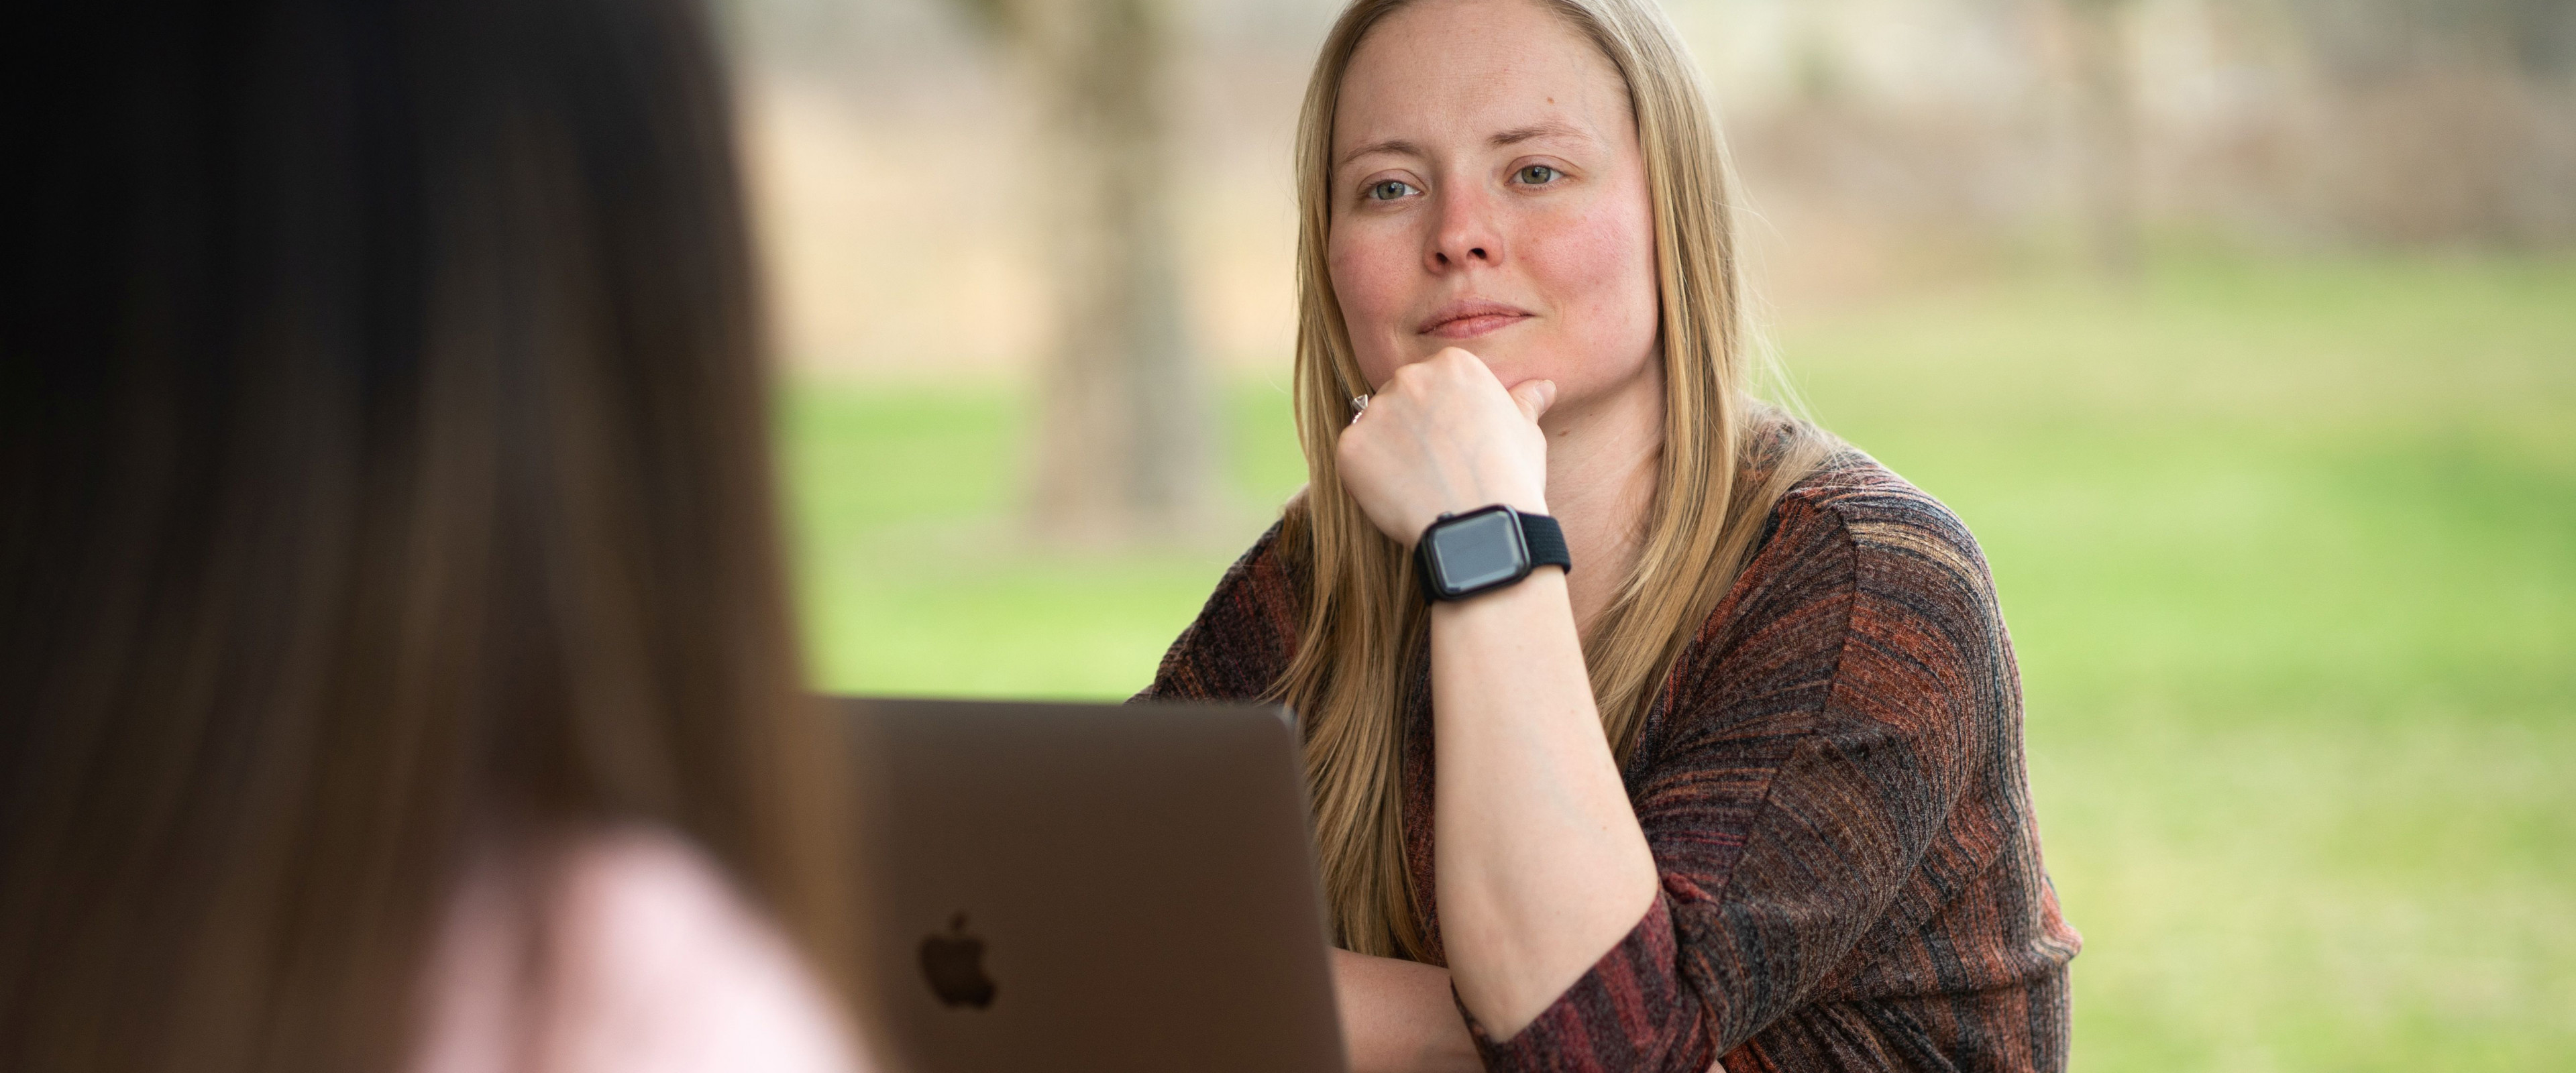 Katie Marshall sitting at laptop, resting her face on her hand.